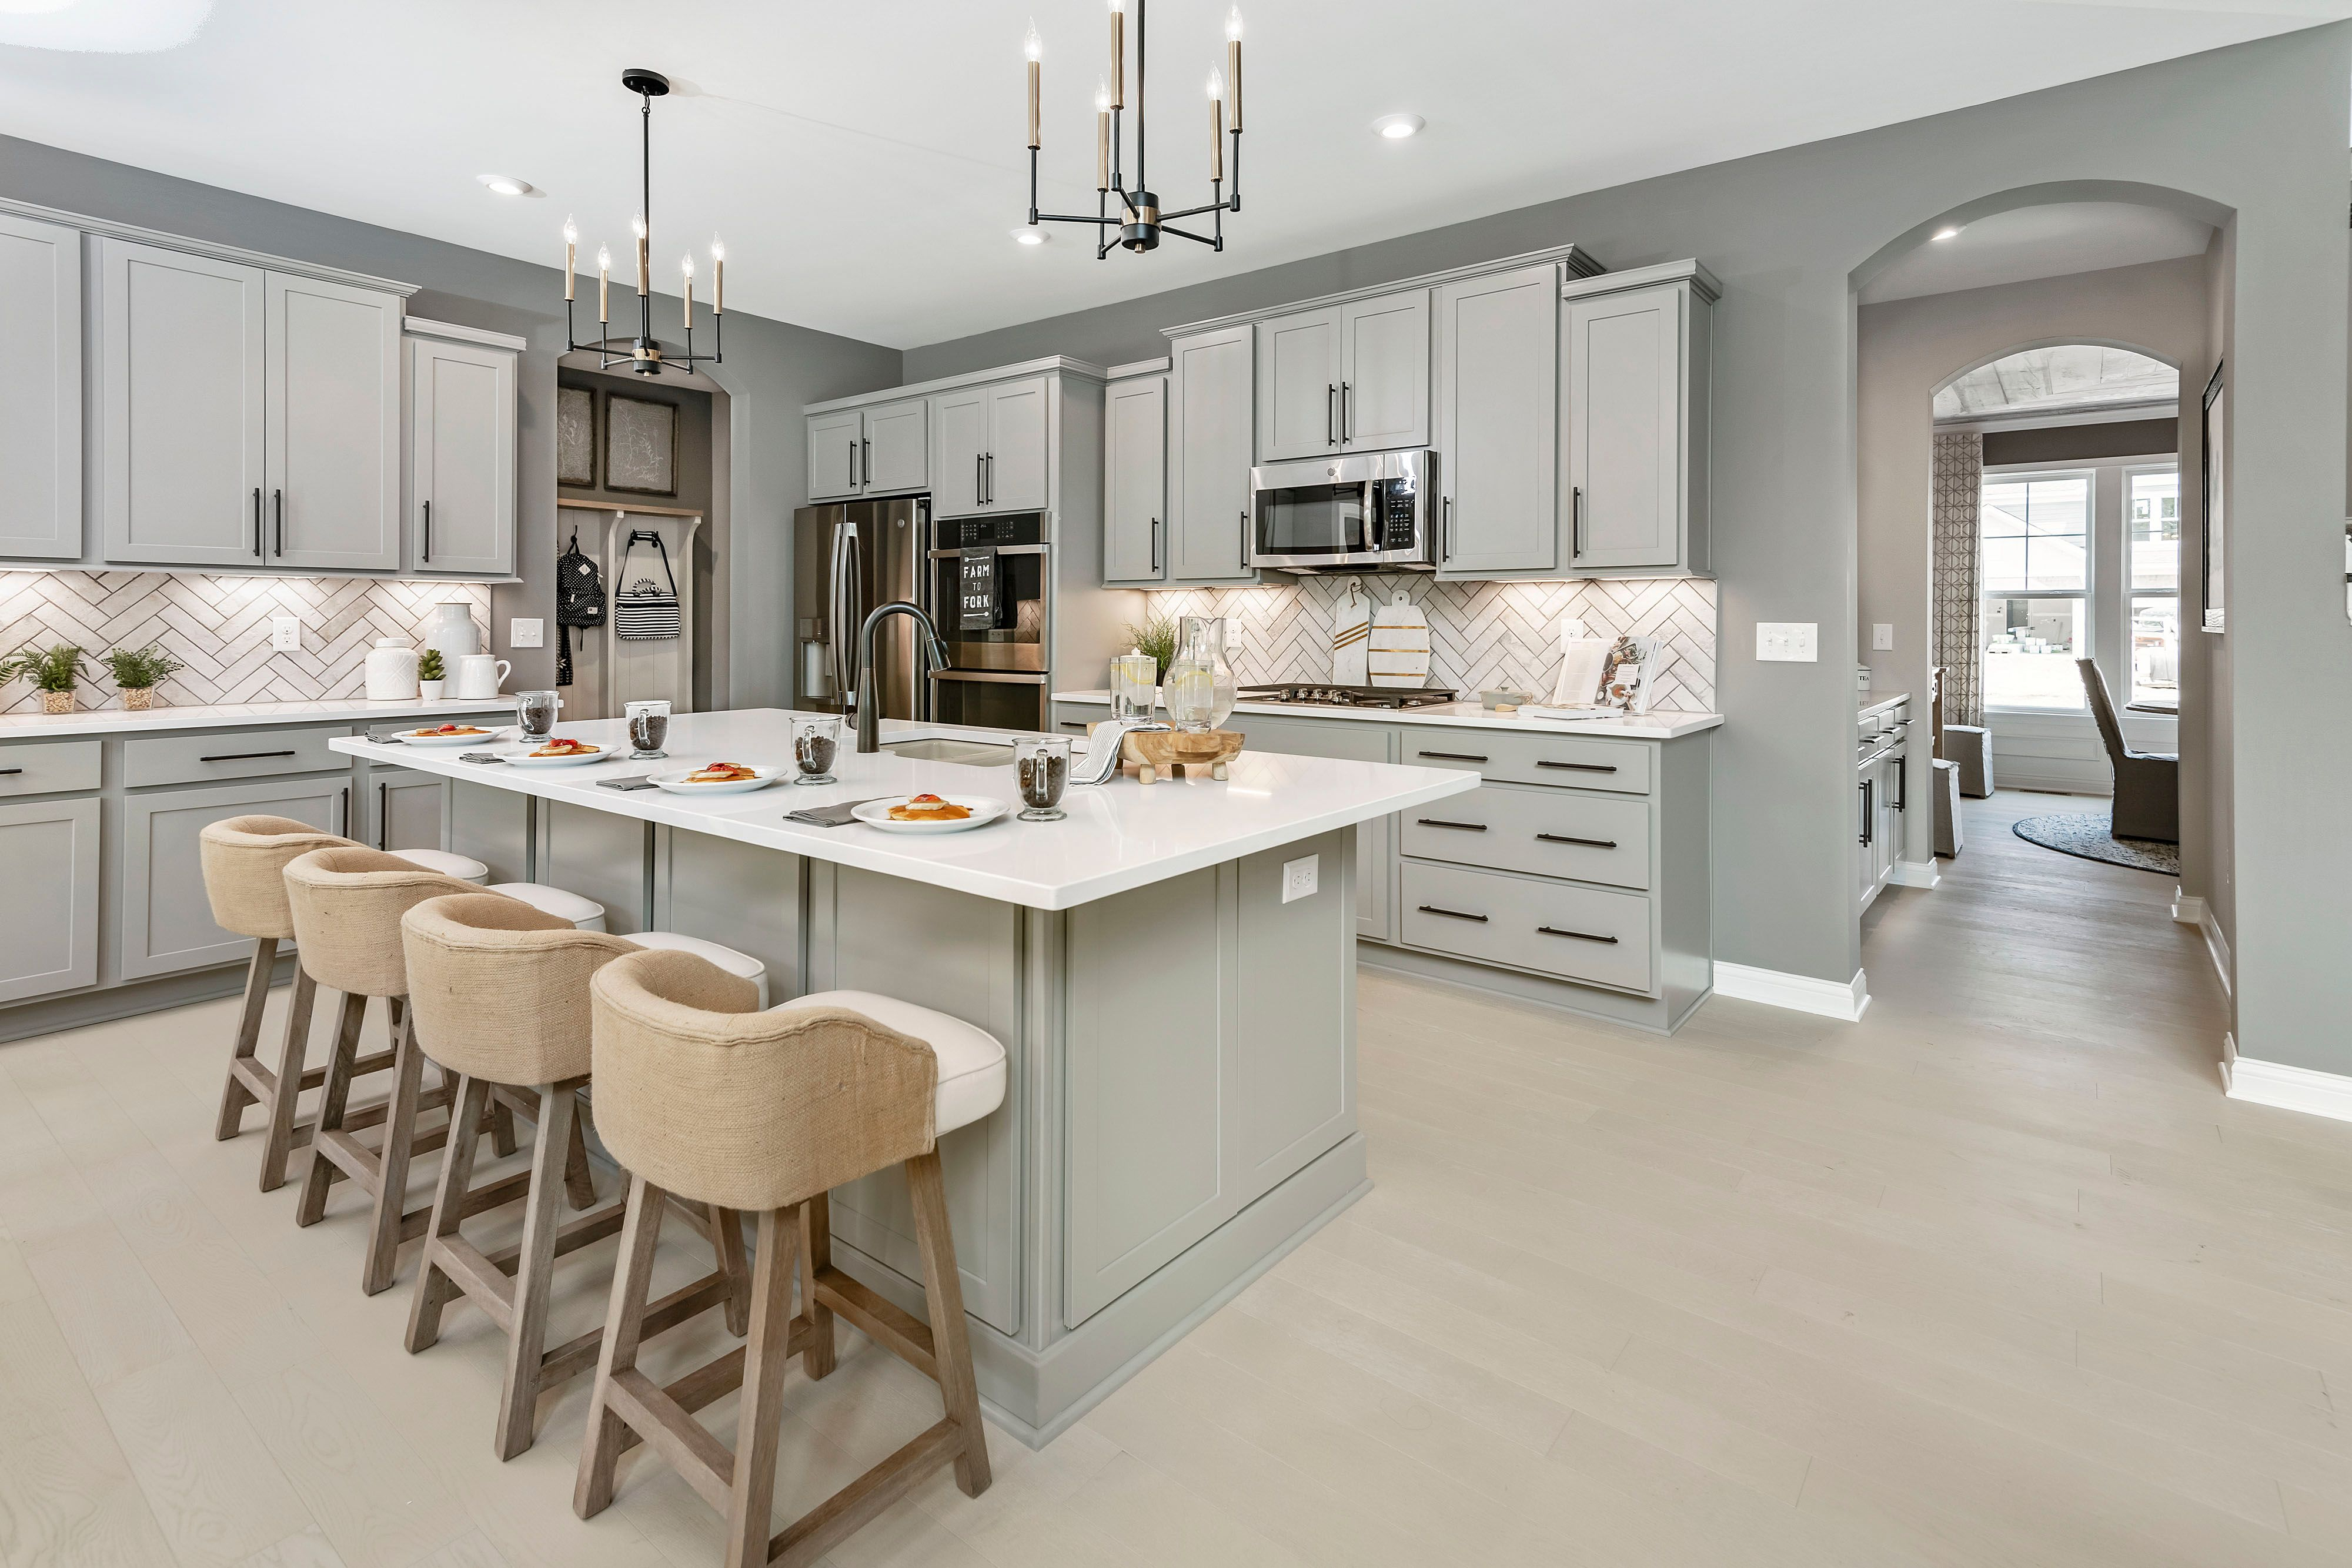 Kitchen featured in the Leland By Fischer Homes  in Columbus, OH